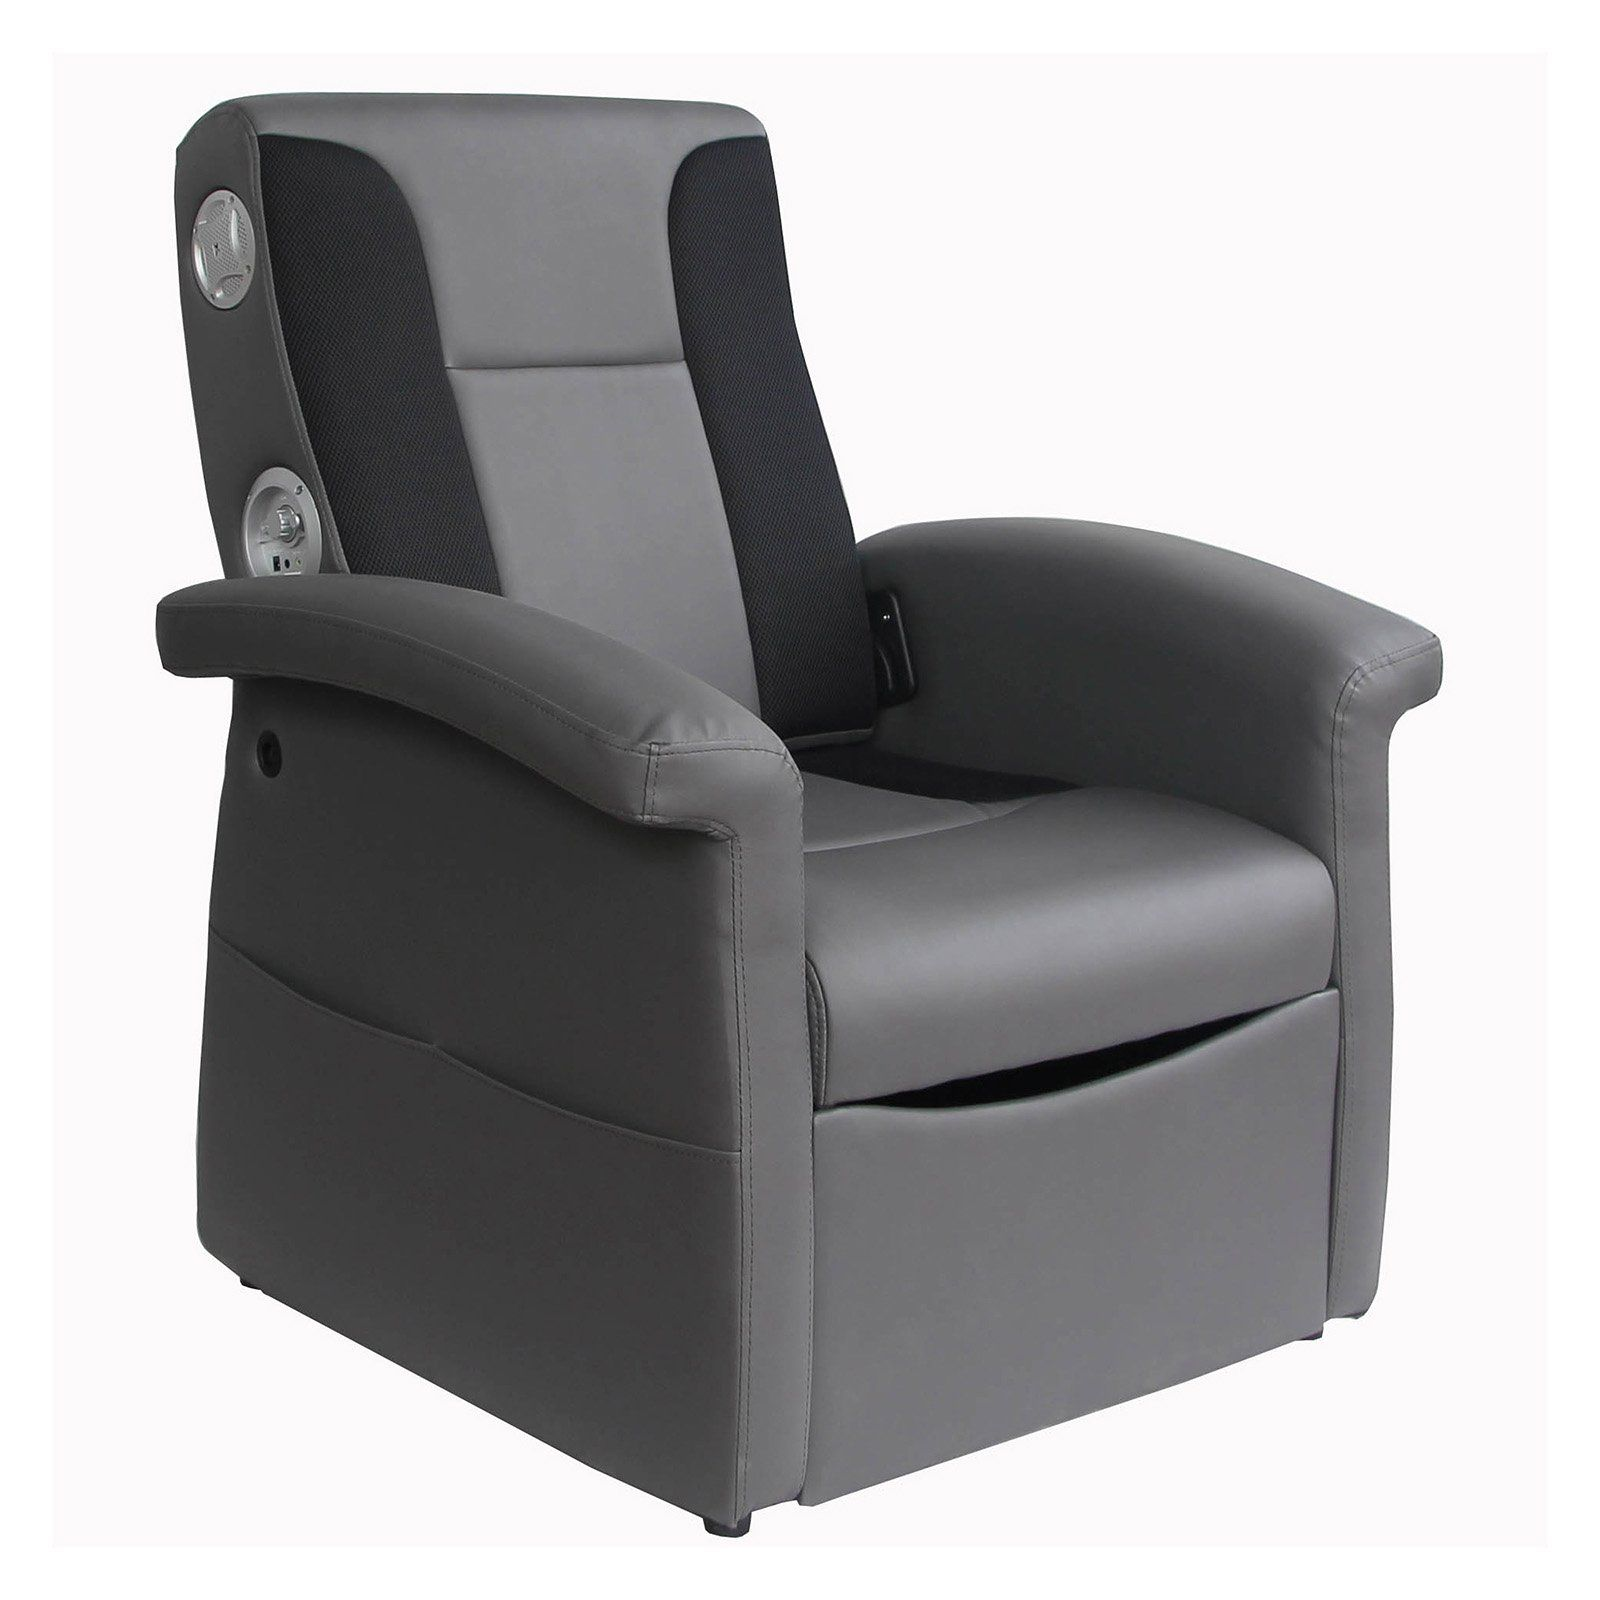 Ace Bayou XRocker Storage Flip Video Game Chair with 2.1